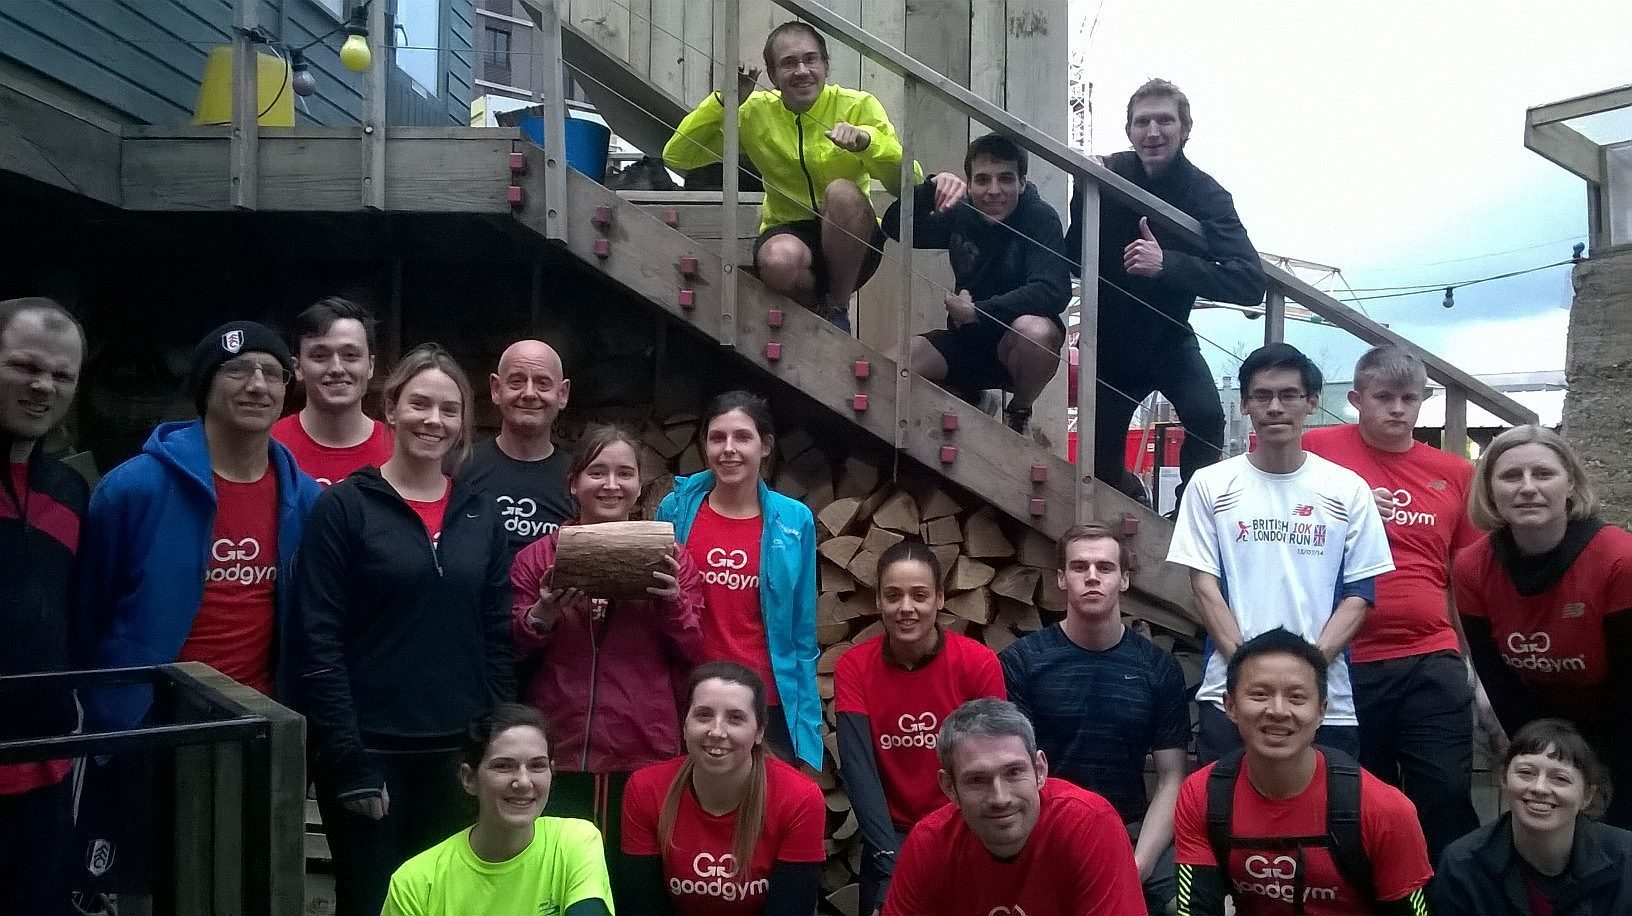 Working Wednesdays: Churning Compost with Good Gym at the Skip Garden, London, England